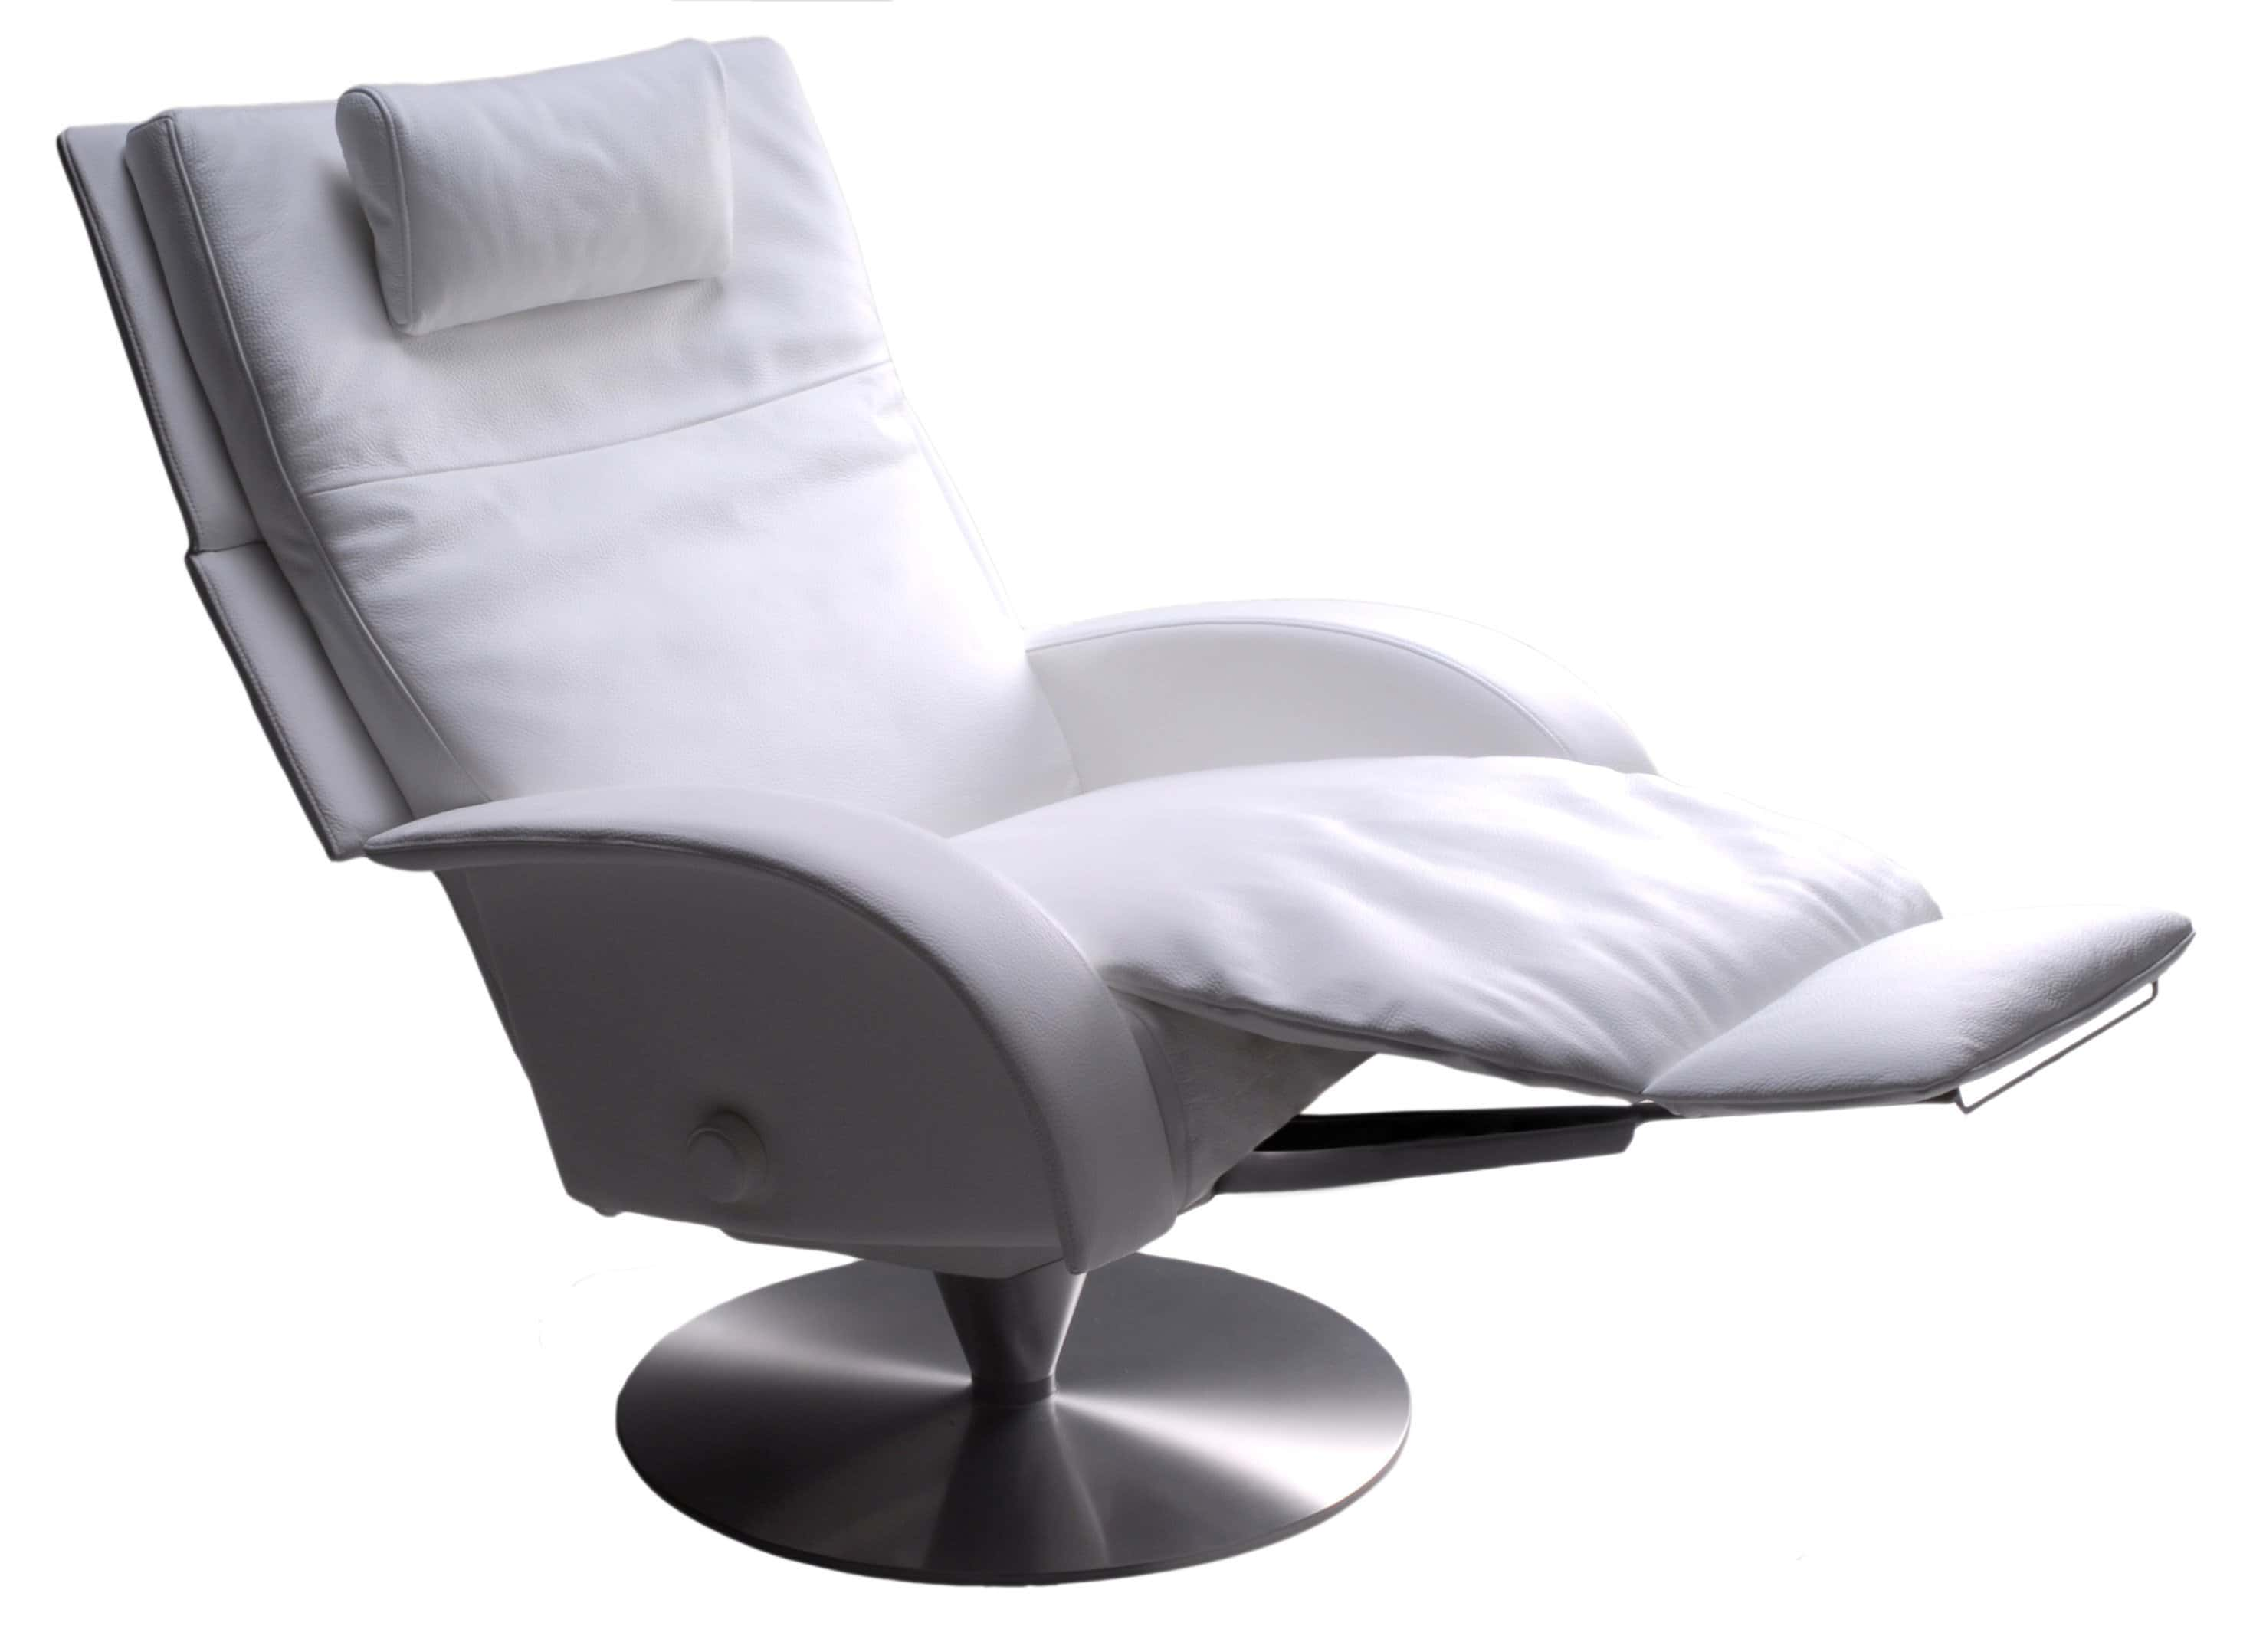 Elegant Modern Recliner Chair Loccie Better Homes